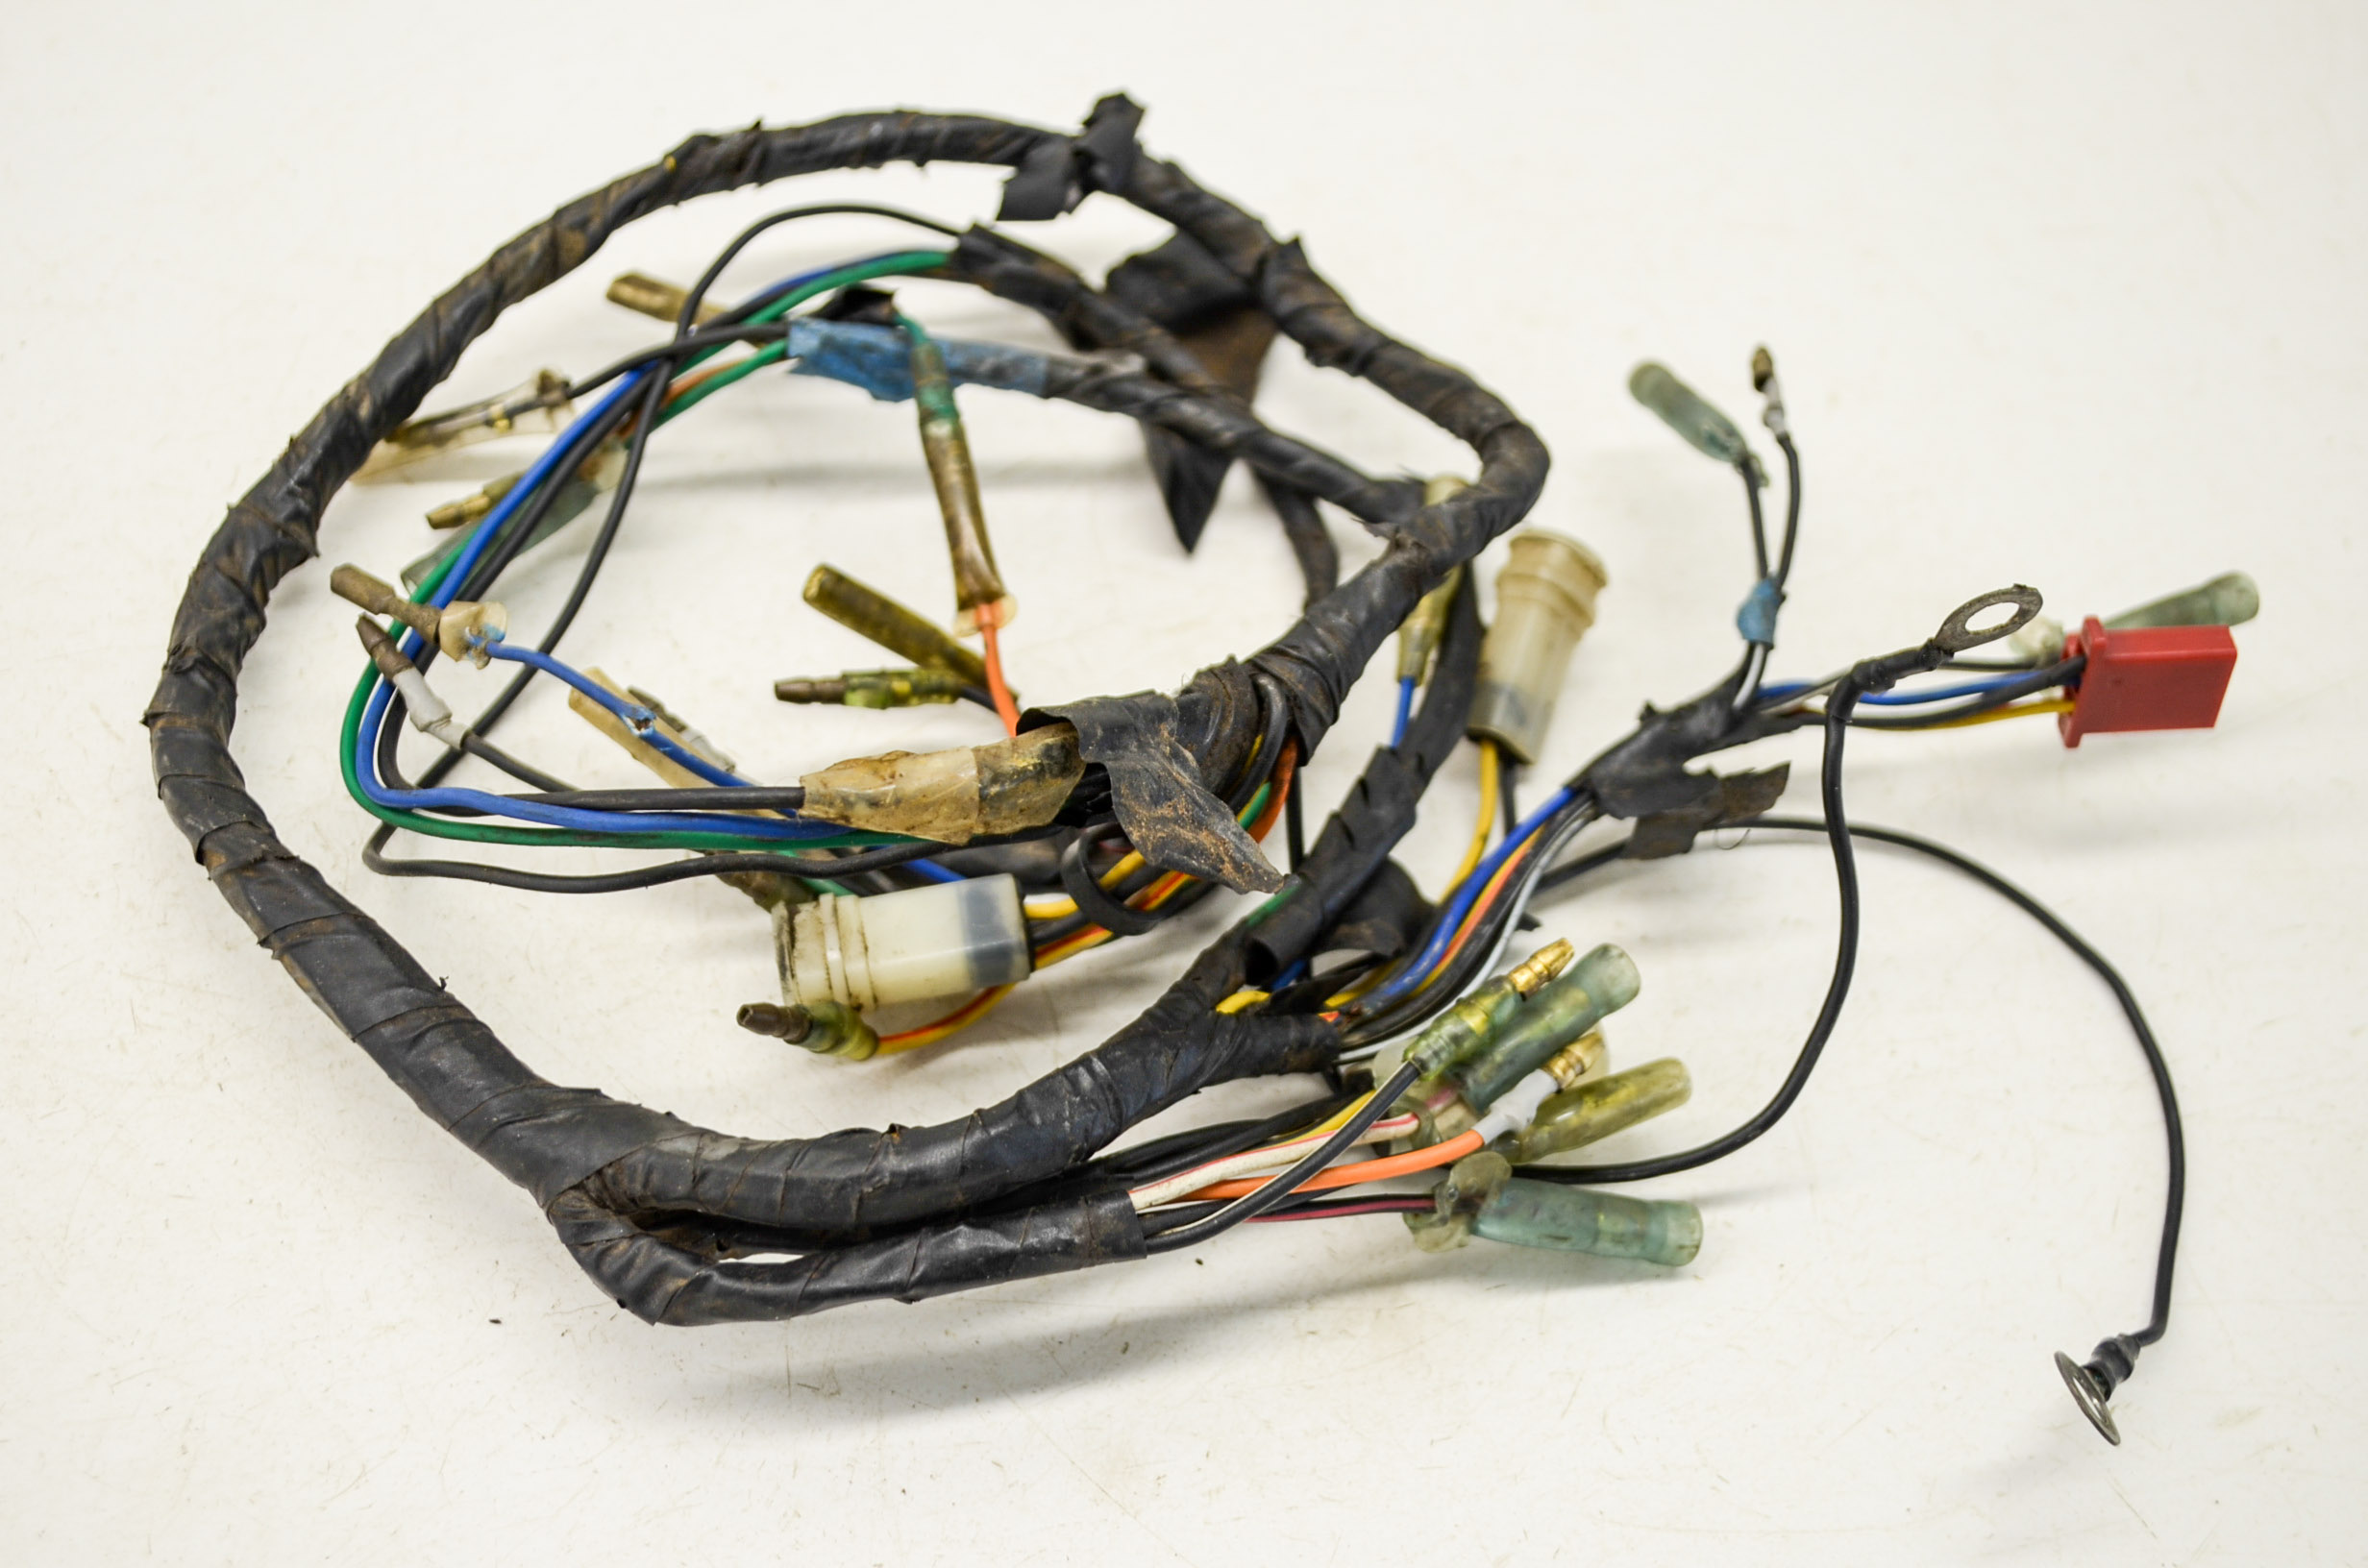 91 yamaha blaster 200 wire harness electrical wiring yfs200 2x4 ebay rh ebay com Yamaha Blaster Wiring- Diagram yamaha blaster 200 wiring harness